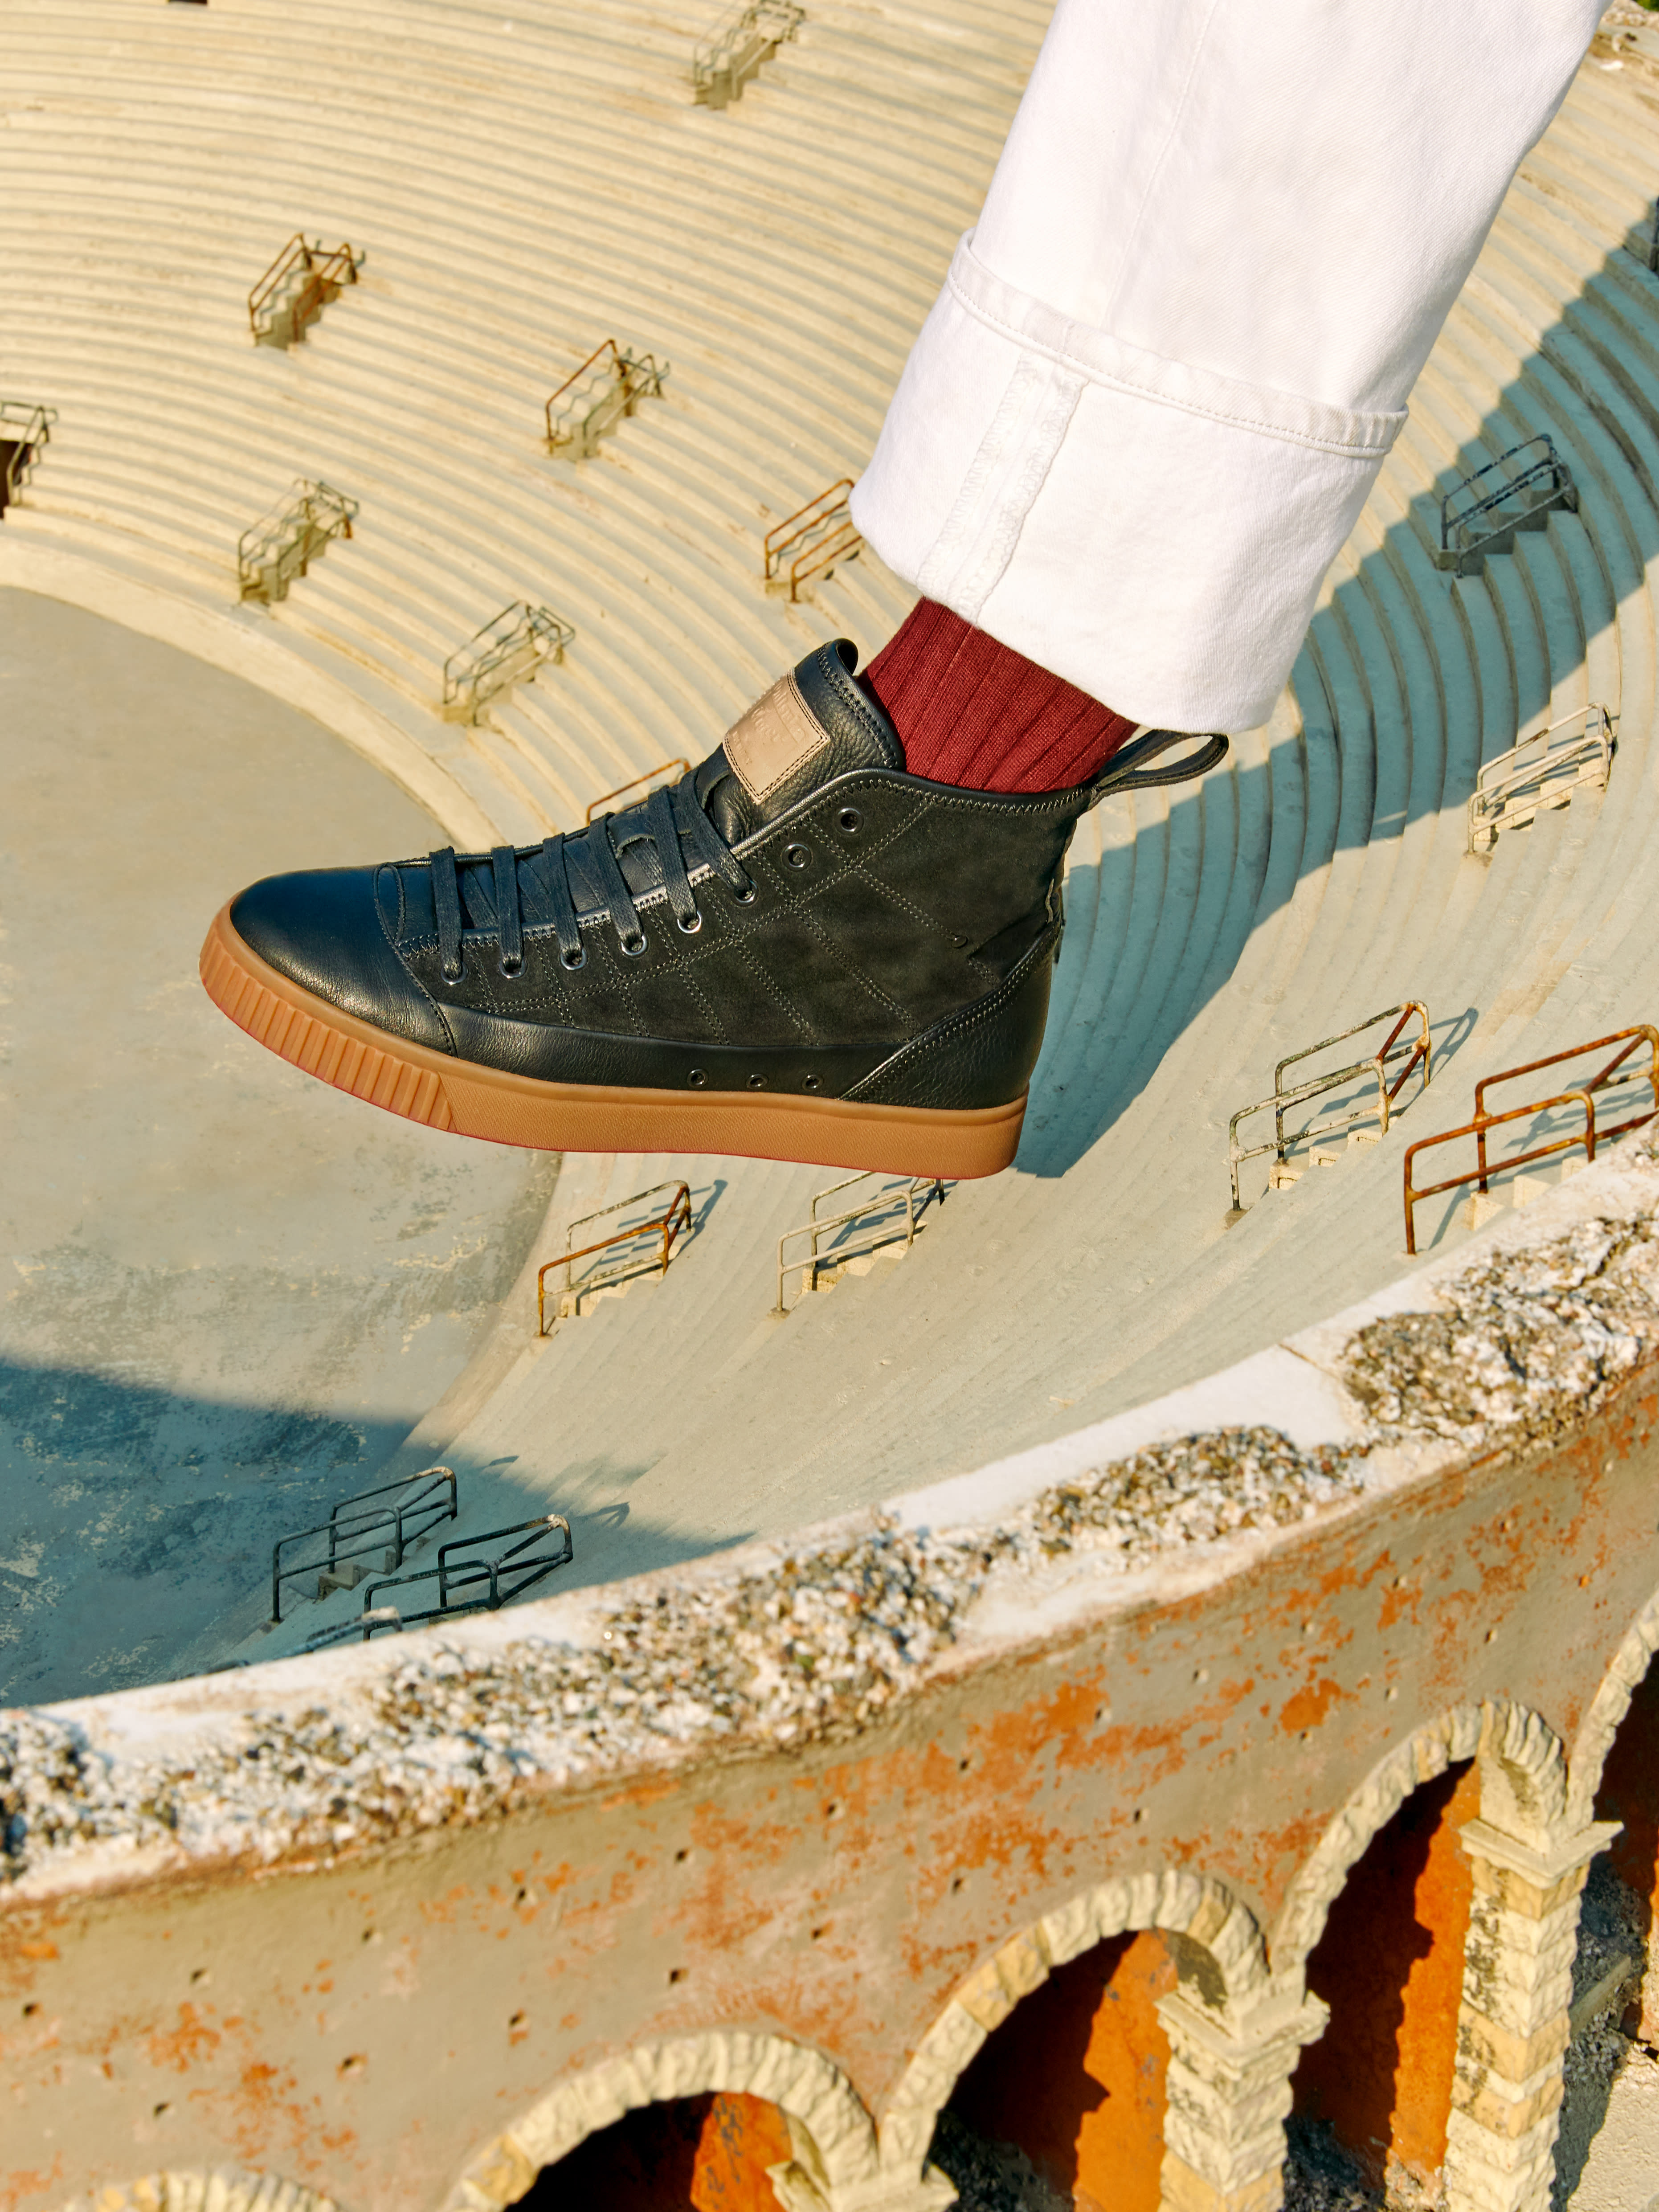 5689bf4677b Onitsuka Tiger Showcases Luxury Craftsmanship with the Made in Italy ...